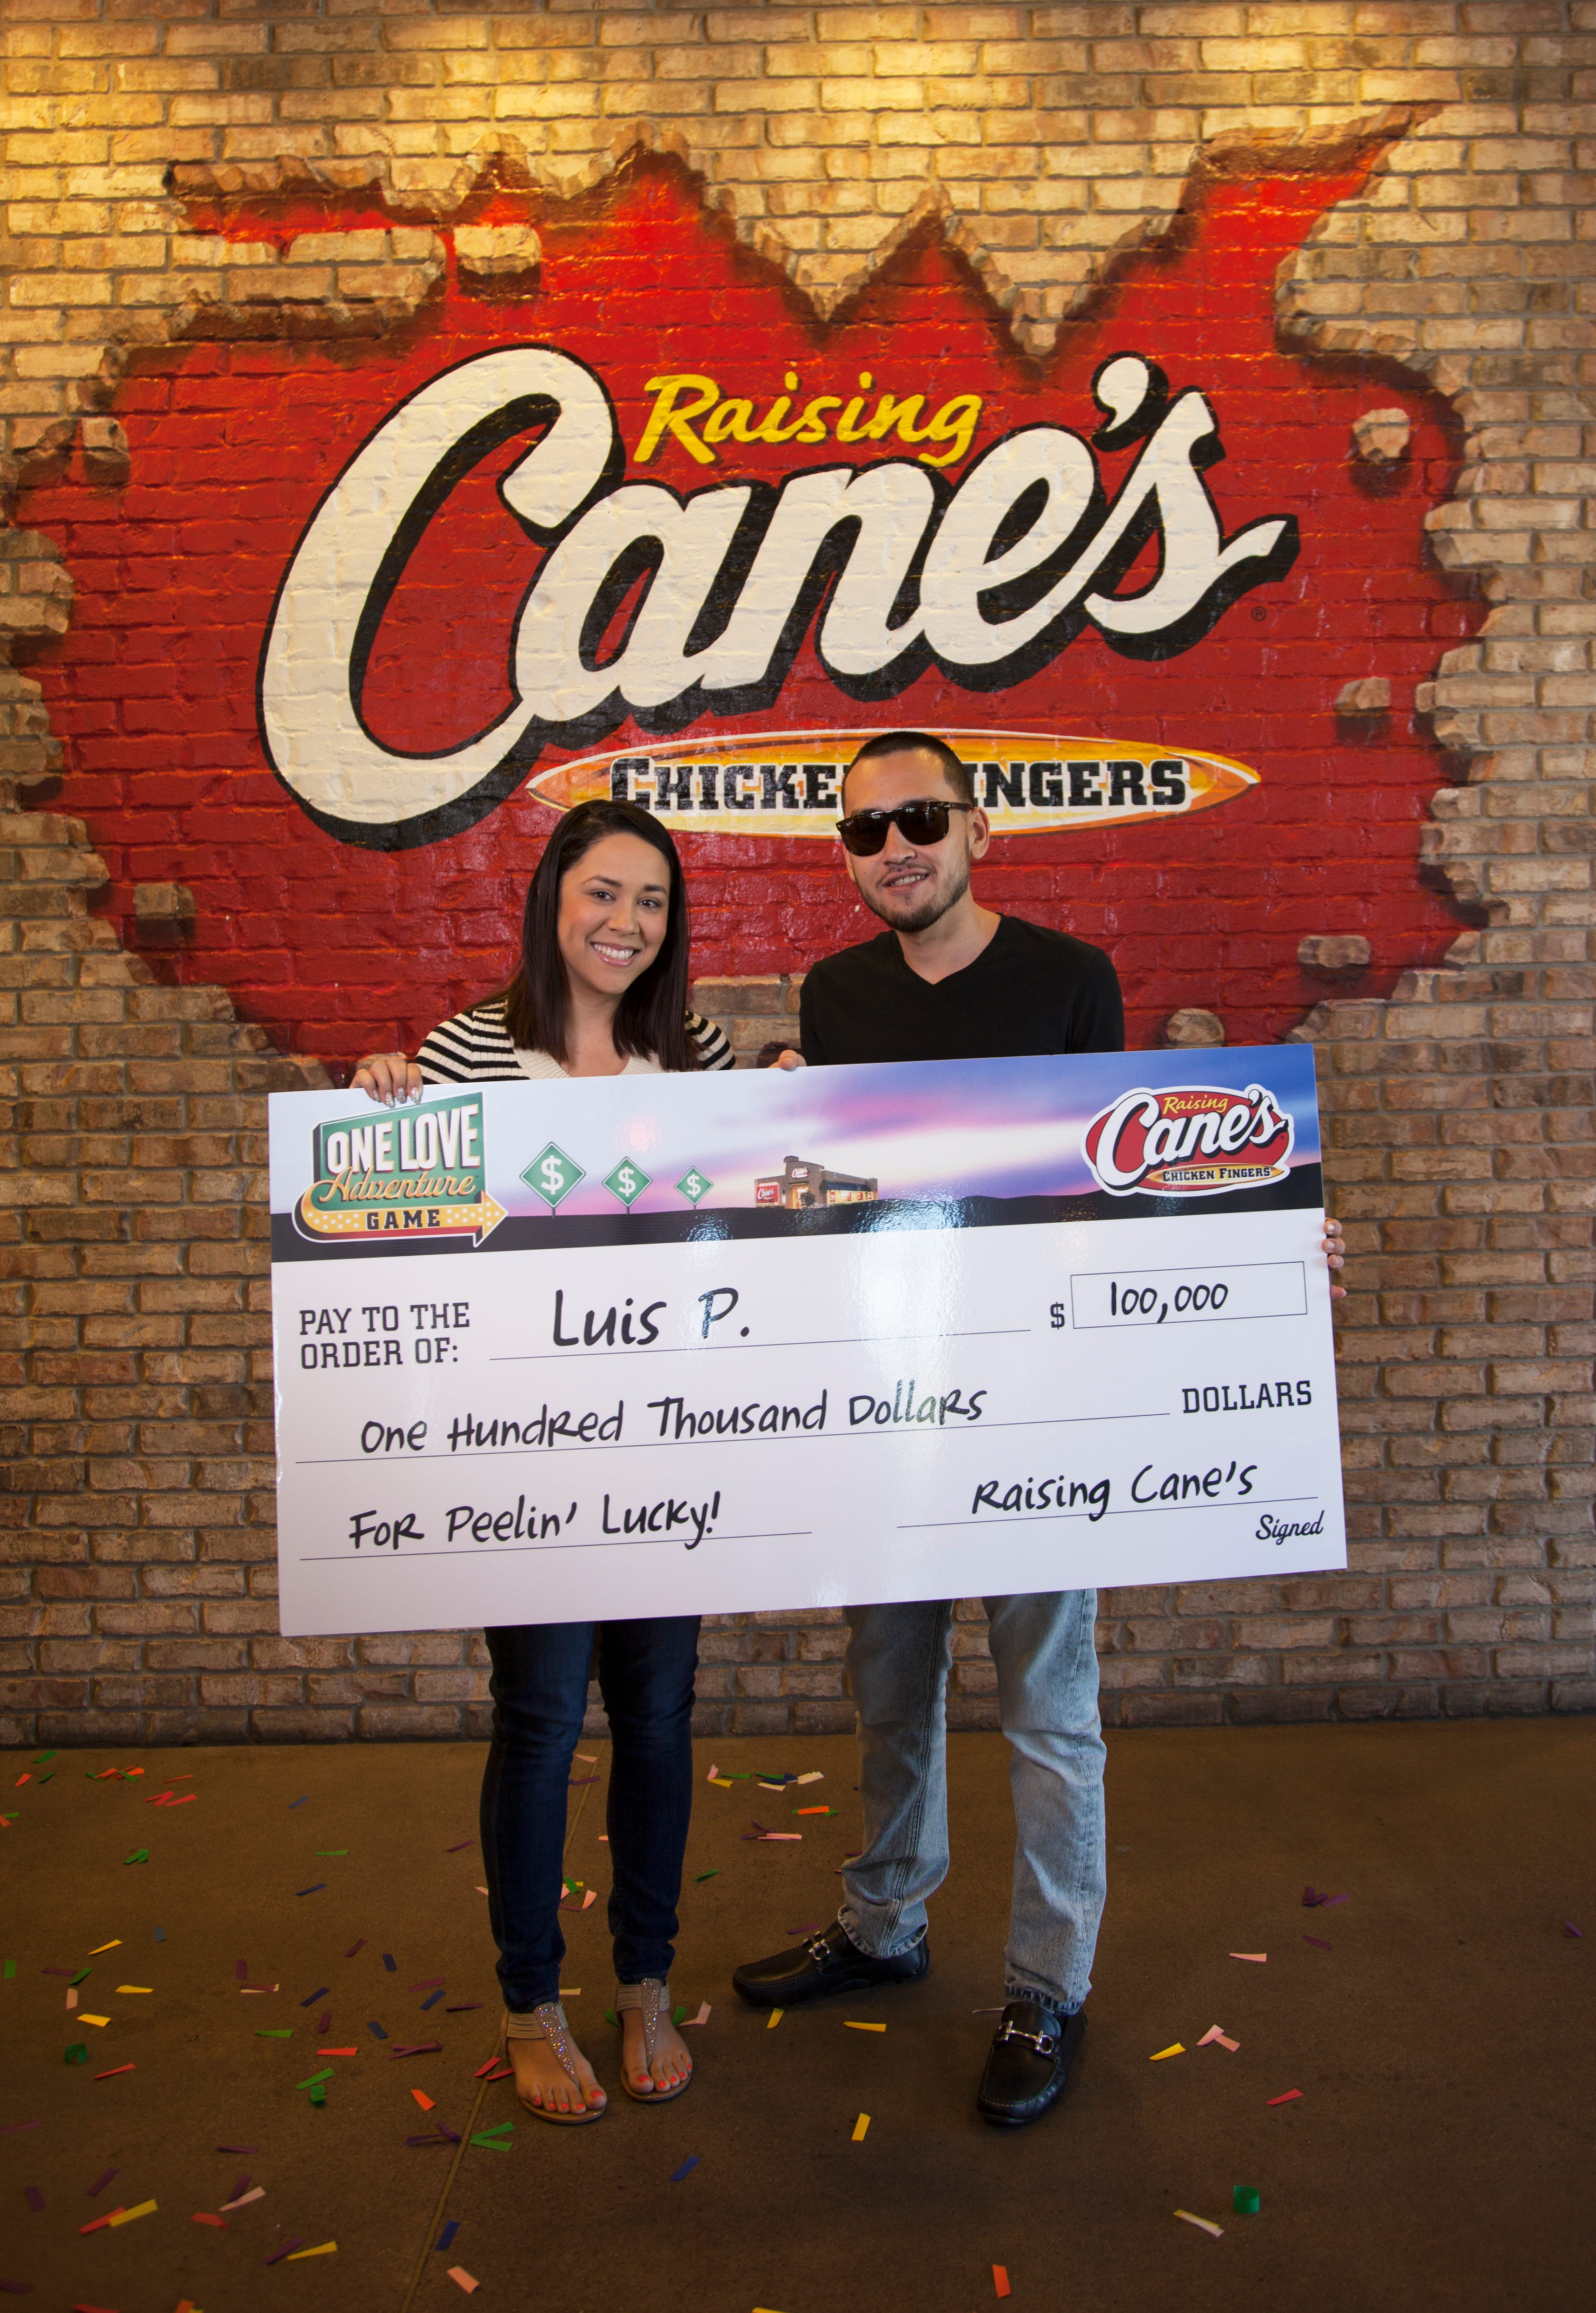 Raising canes one love giveaway sweepstakes